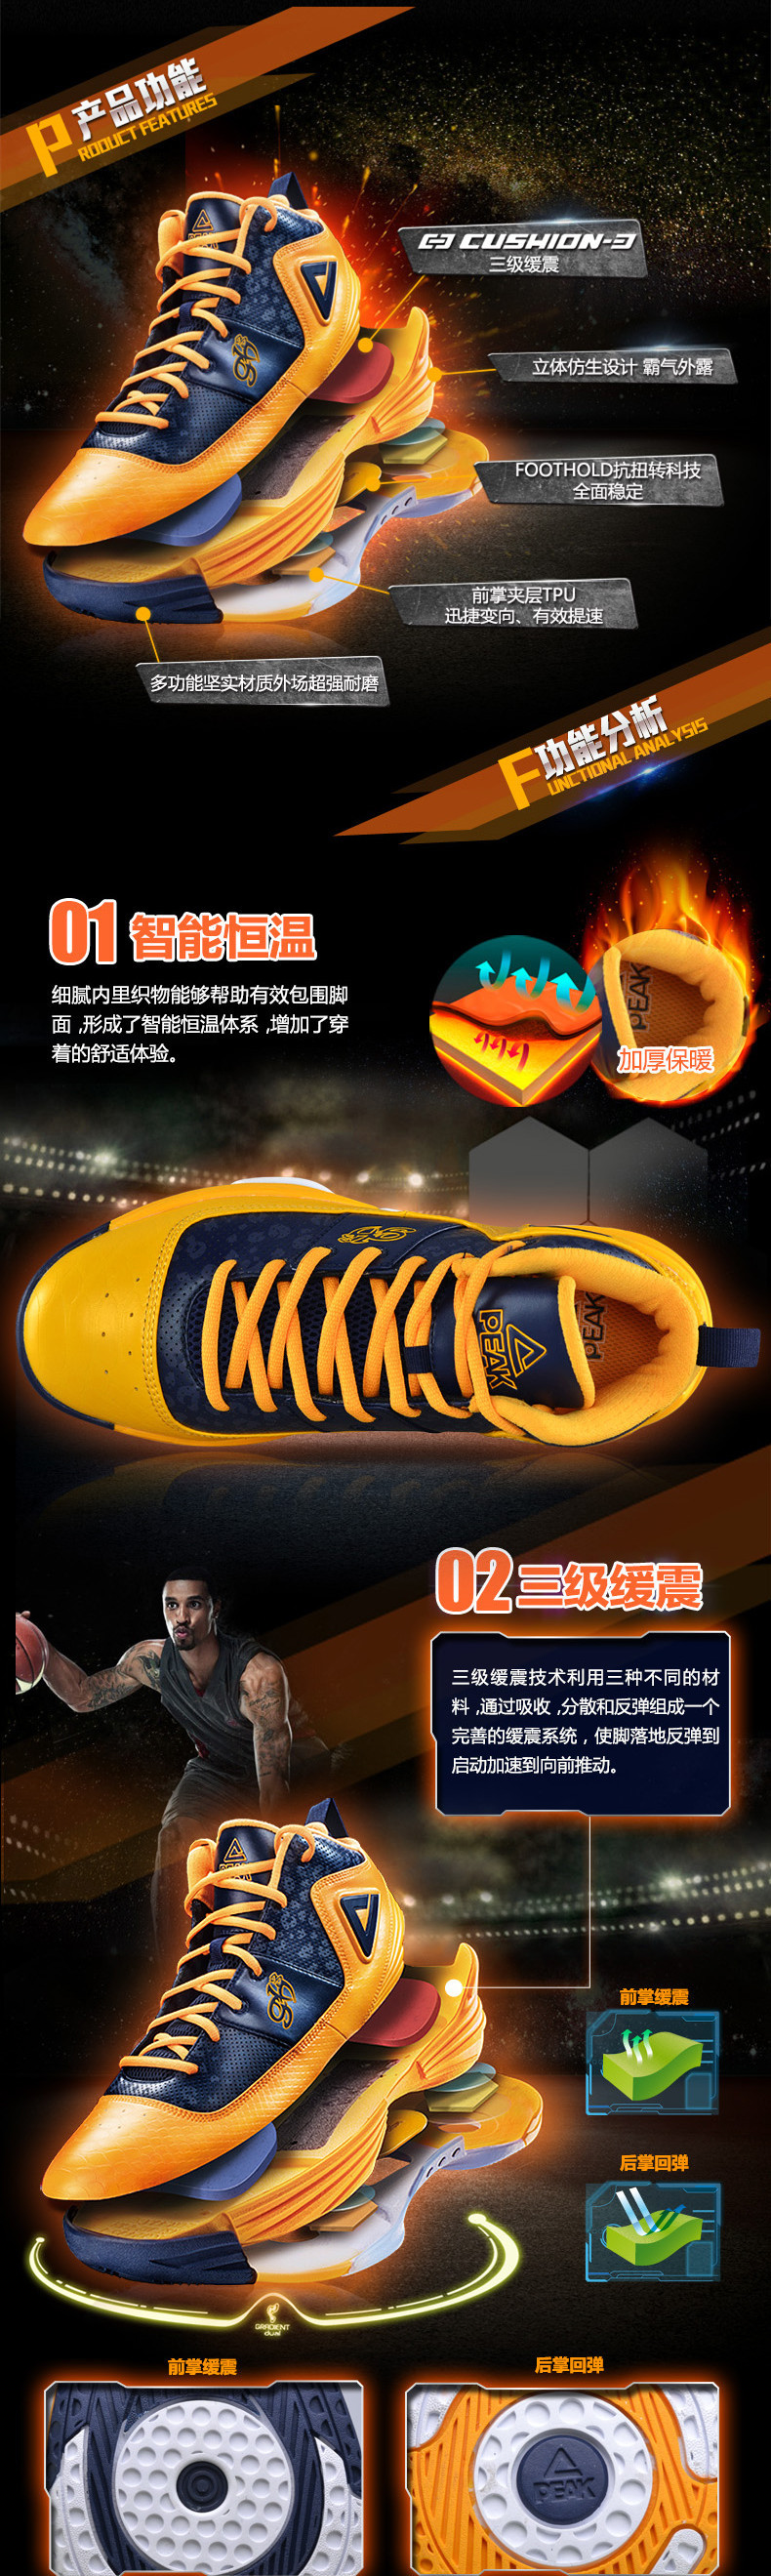 Peak GH3 George Hill Indiana Pacers Basketball Shoes